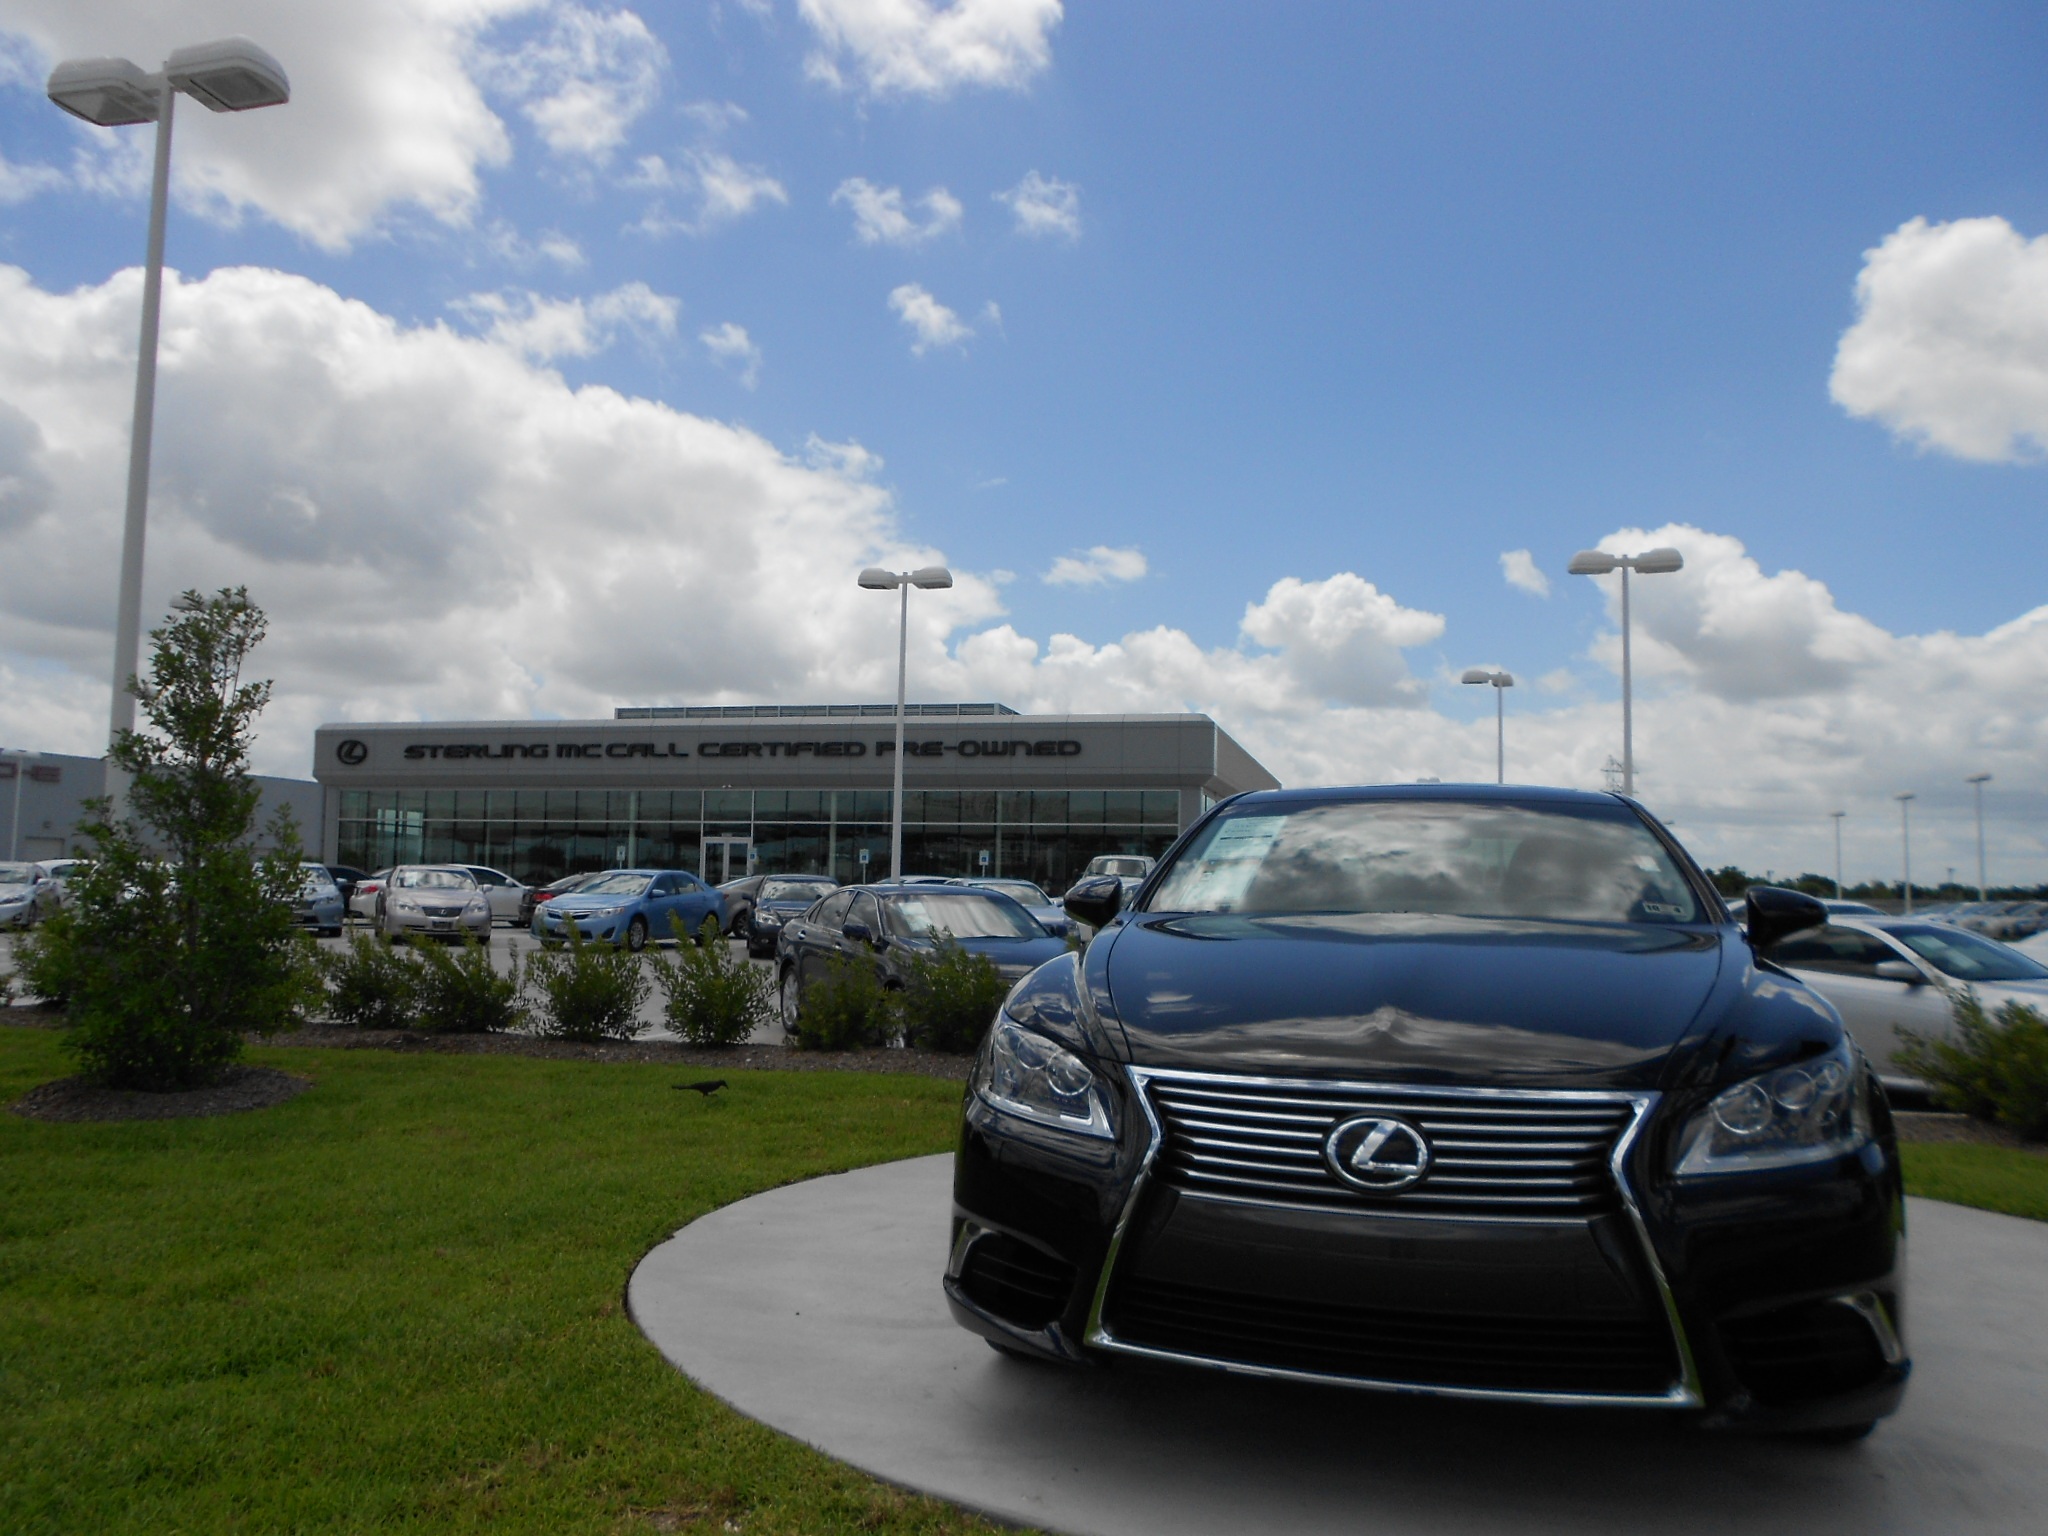 Sterling mccall lexus service coupons